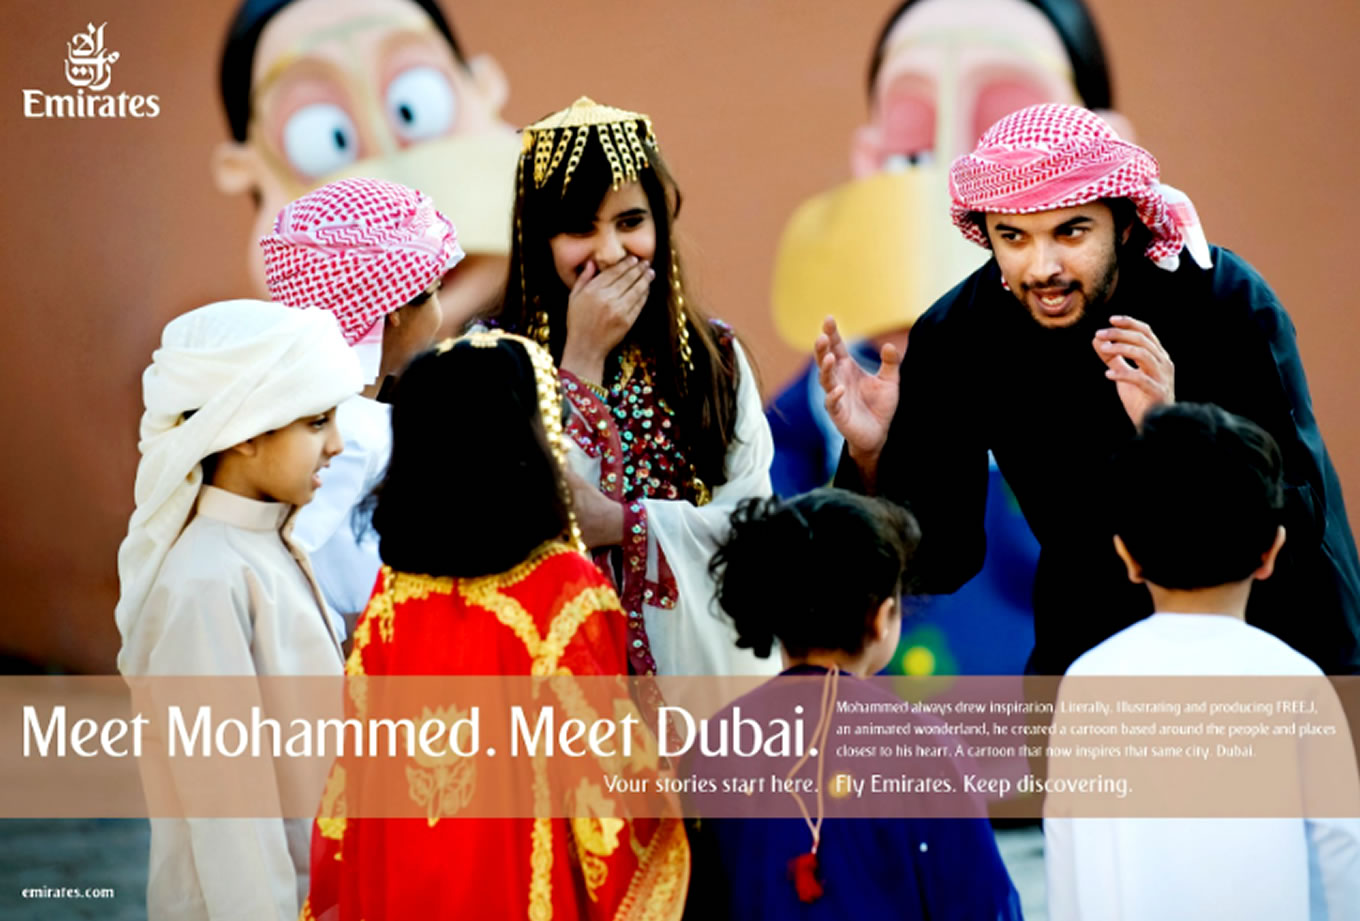 Meet Mohammed, Meet Dubai Advertising Campaign by Emirates